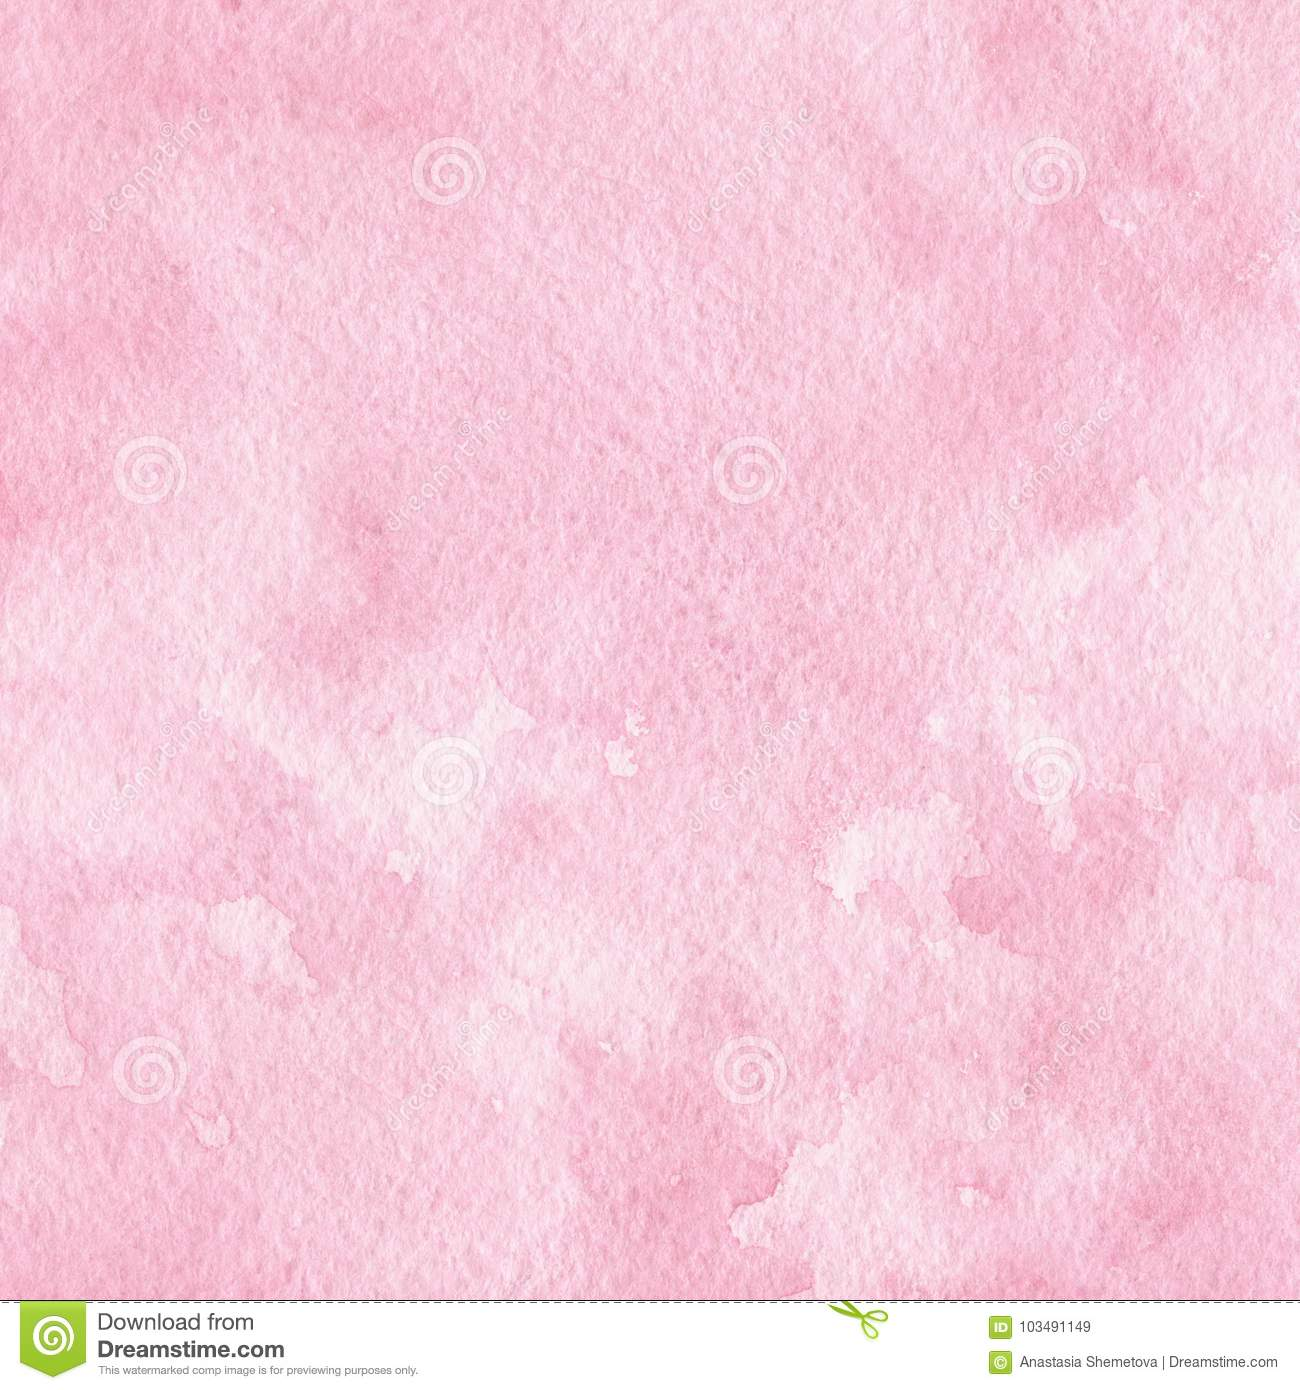 Pink watercolor background usable as a texture for wedding usable as a texture for wedding invitations greeting cards design and m4hsunfo